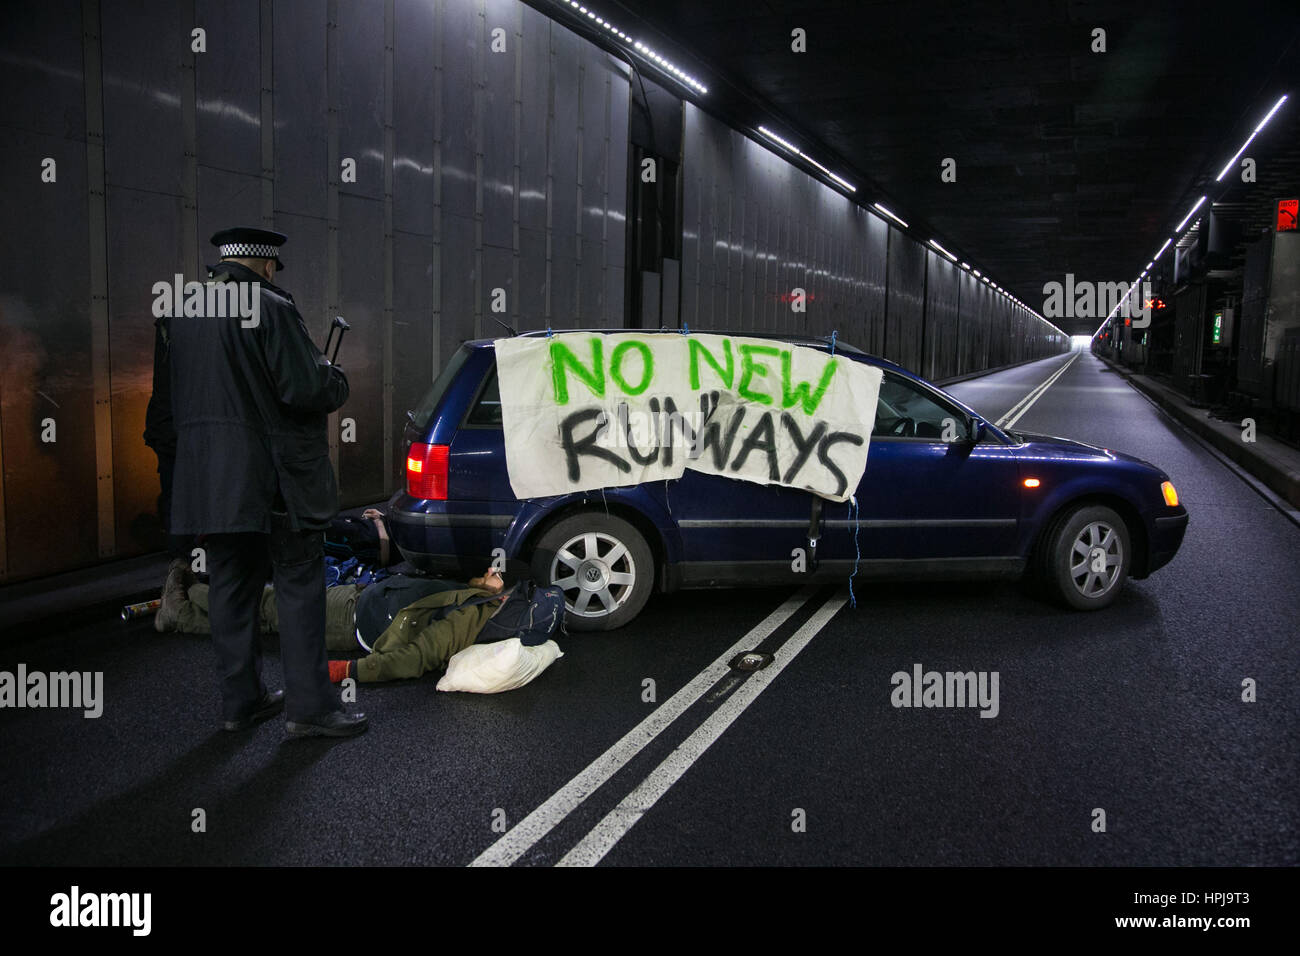 Three Rising Up! activists have blockaded the main access road into Heathrow Terminals 1, 2 and 3, by chaining themselves - Stock Image